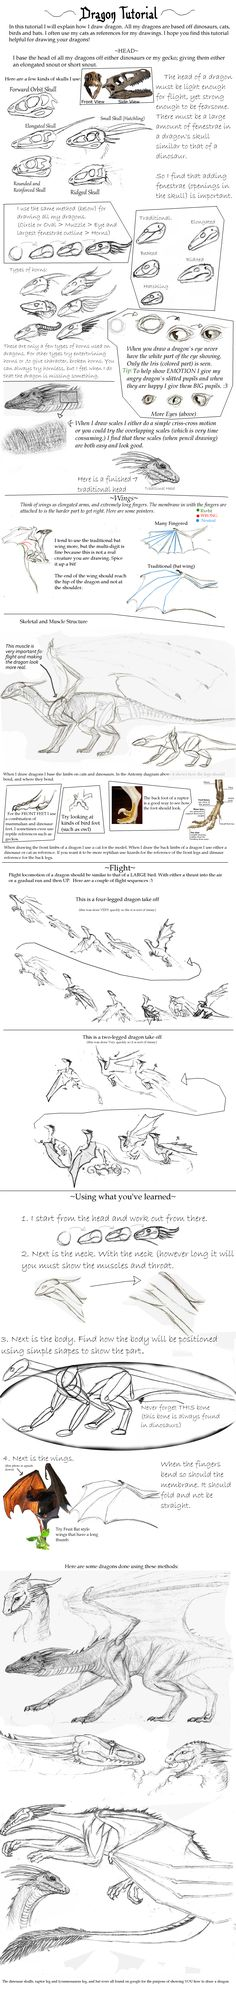 Dragon Tutorial by ~Giddygecko on deviantART | Using for future ref. This mirrors the style I was looking for. Very helpful!